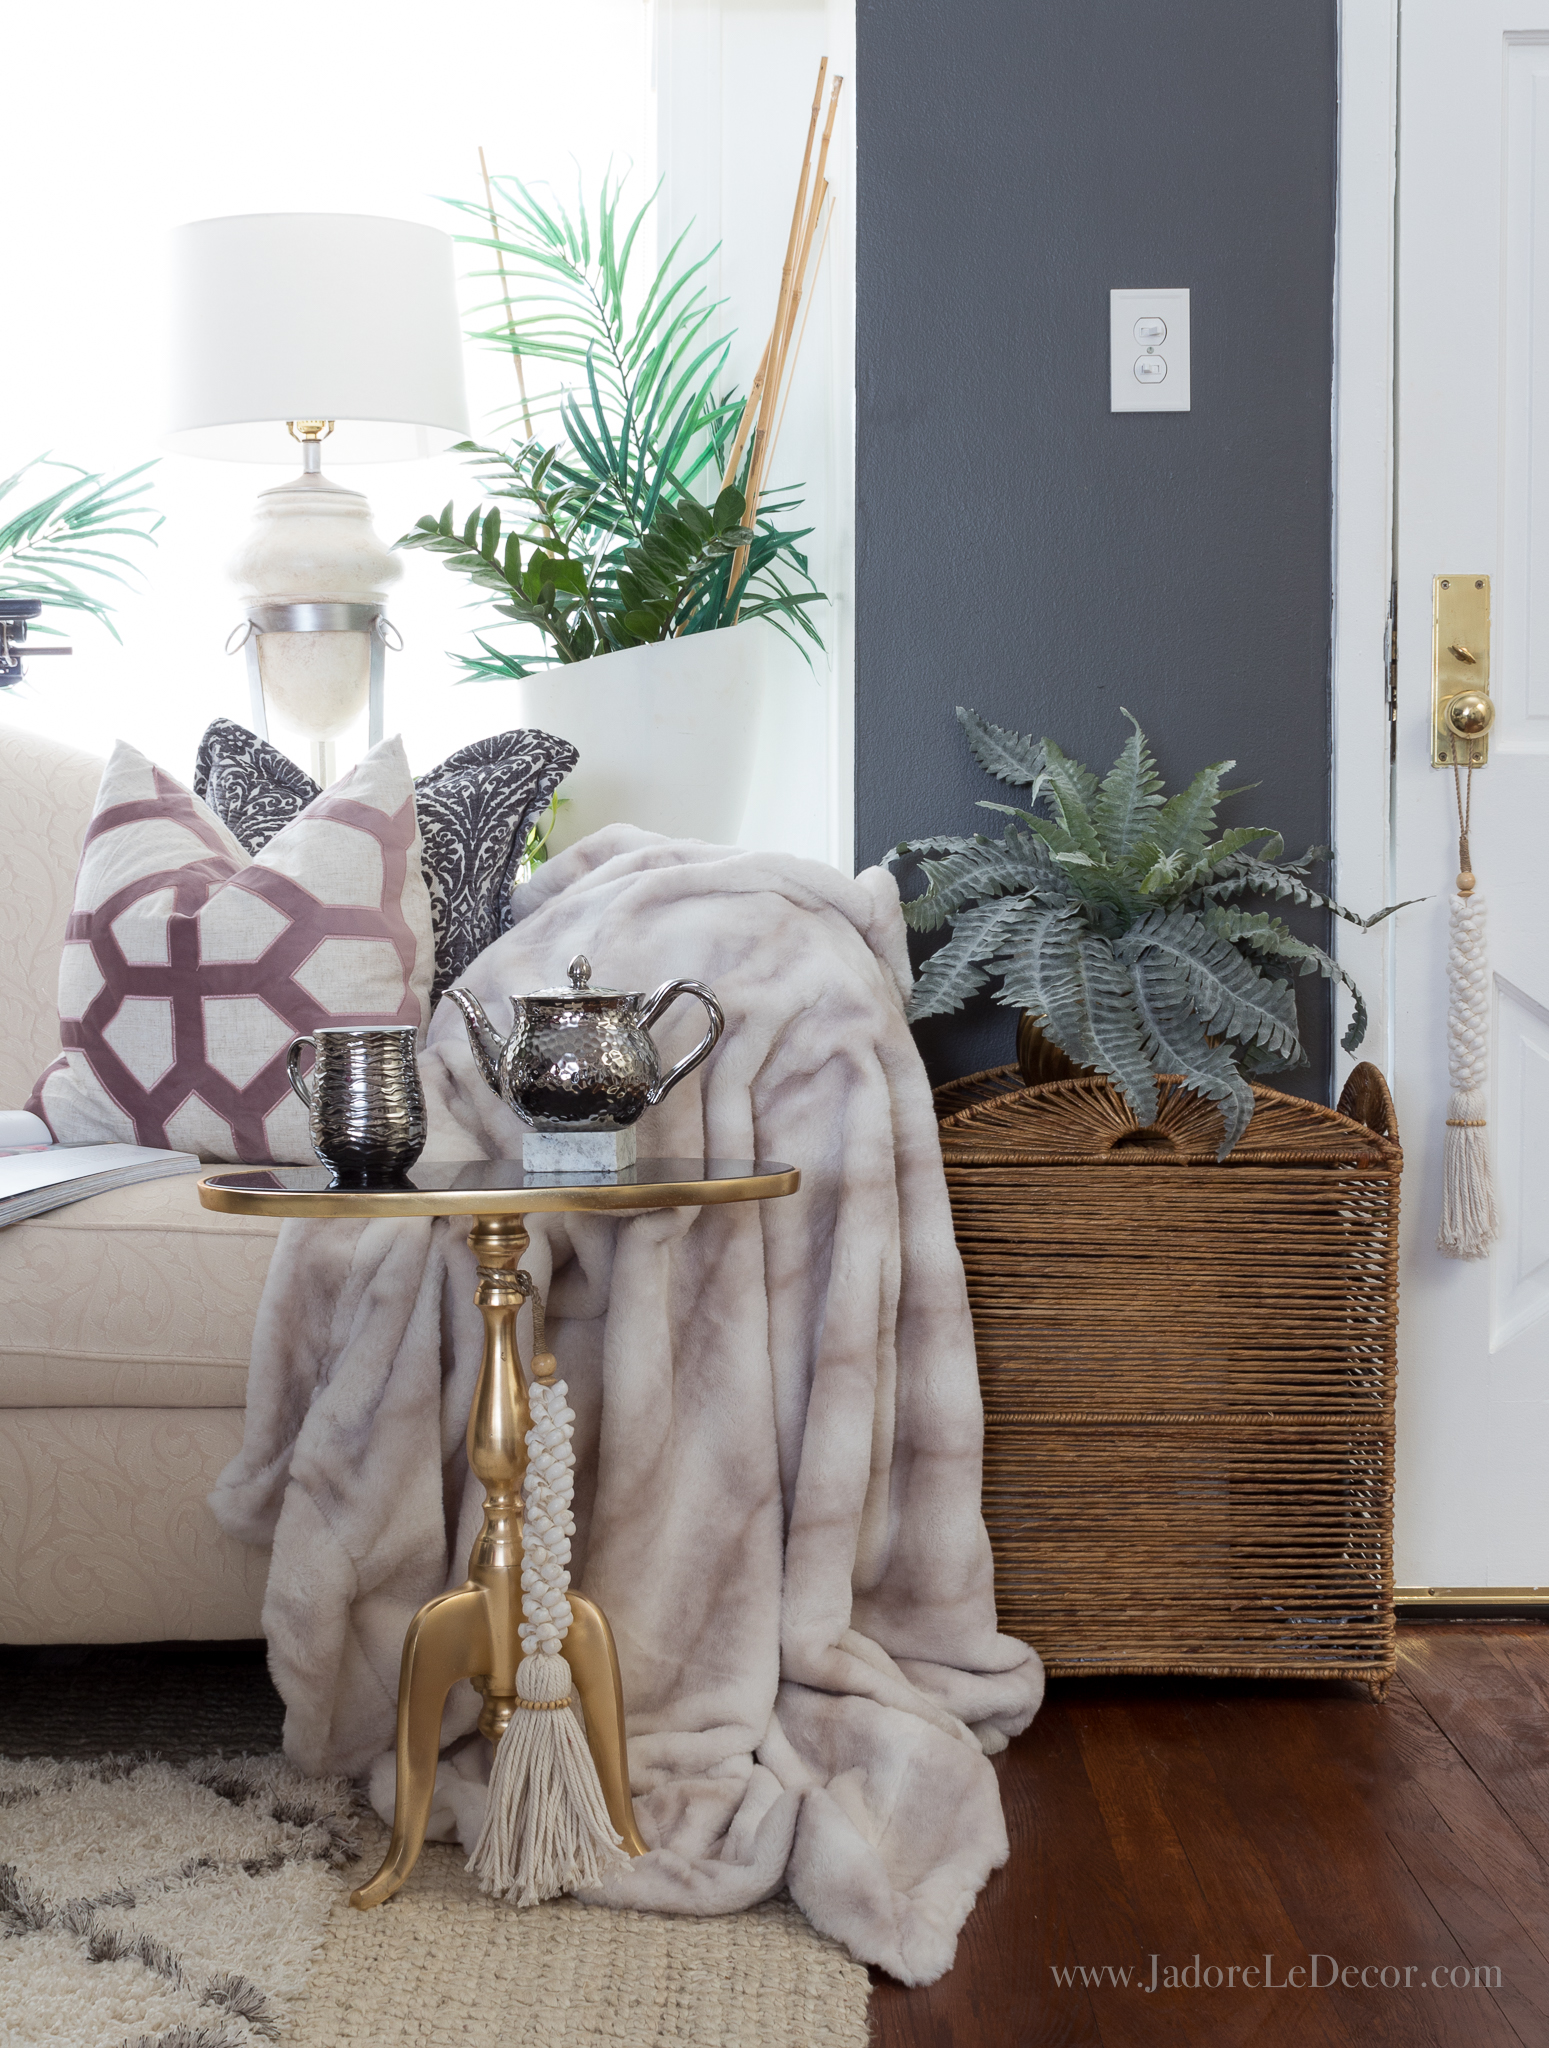 Part one of a 2-part series that defines what global bohemian chic is and shows you how to curate the look at home. | www.jadoreledecor.com/blog/what-is-global-bohemian-chic-and-how-can-you-get-it